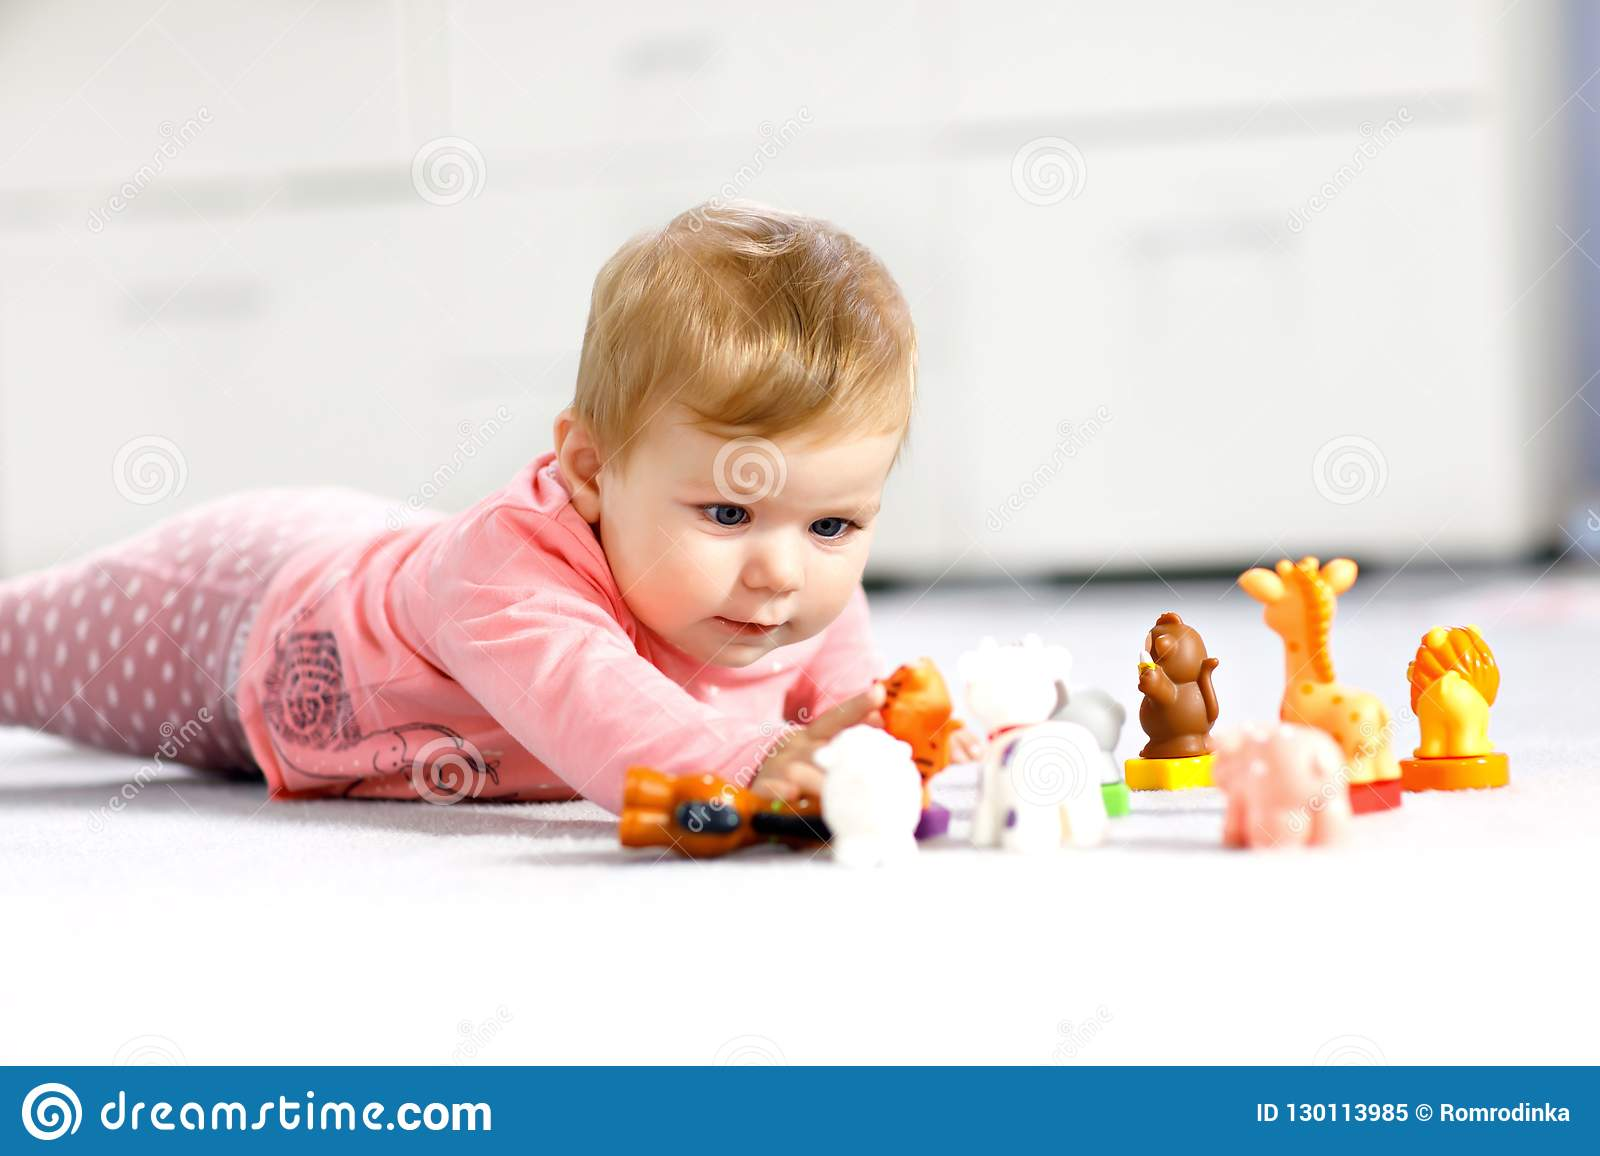 Adorable baby girl playing with domestic toy pets like cow, horse, sheep, dog and wild animals like giraffe, elephant